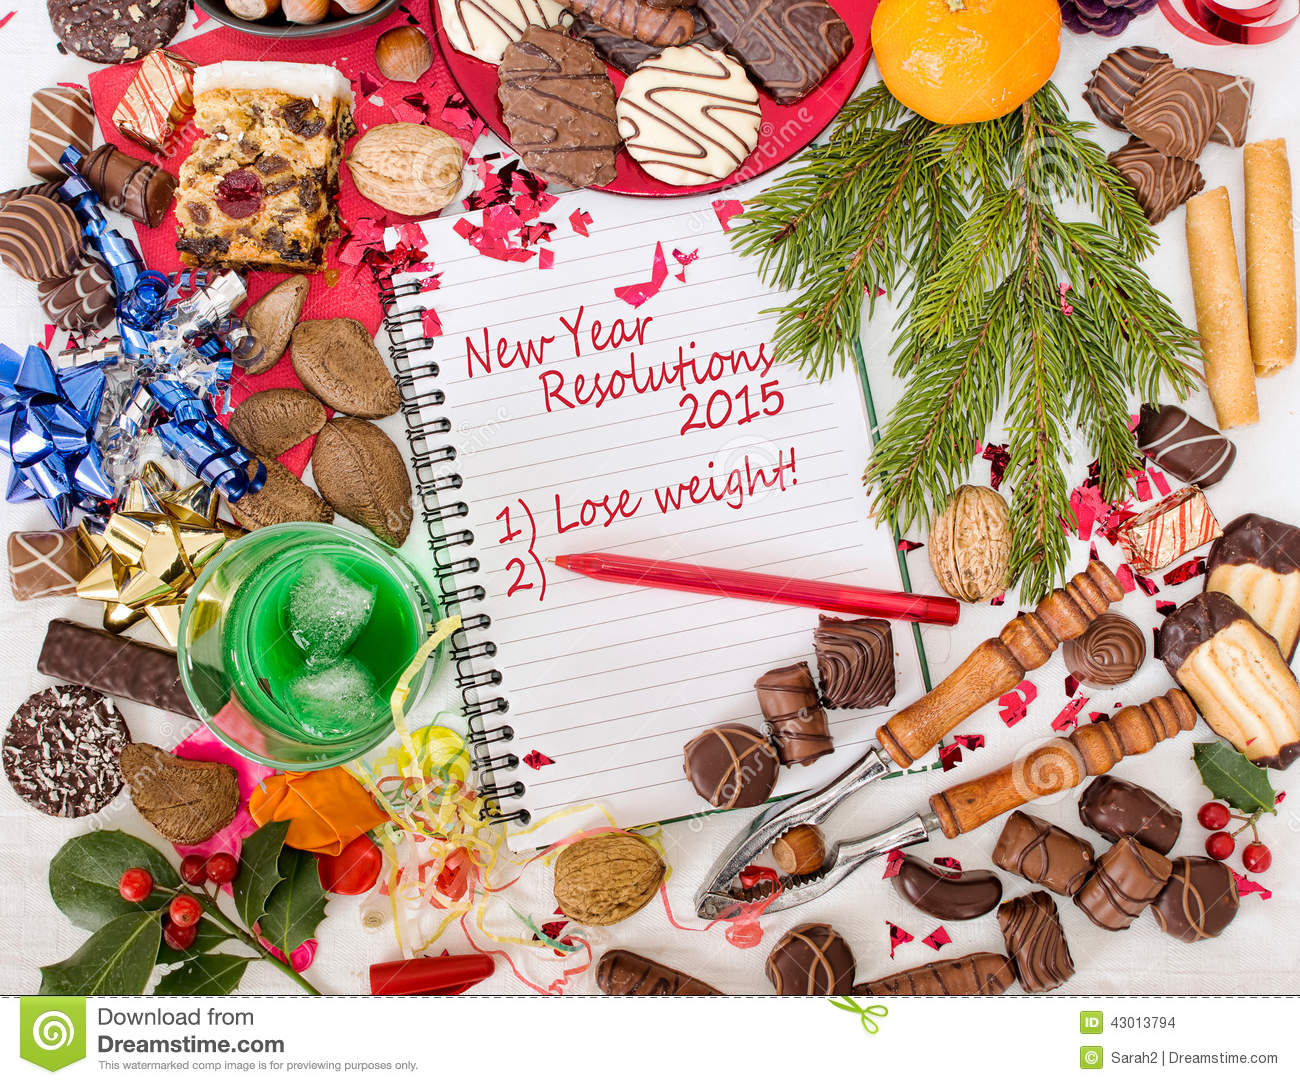 Christmas Food Feast And New Year Resolution To Diet